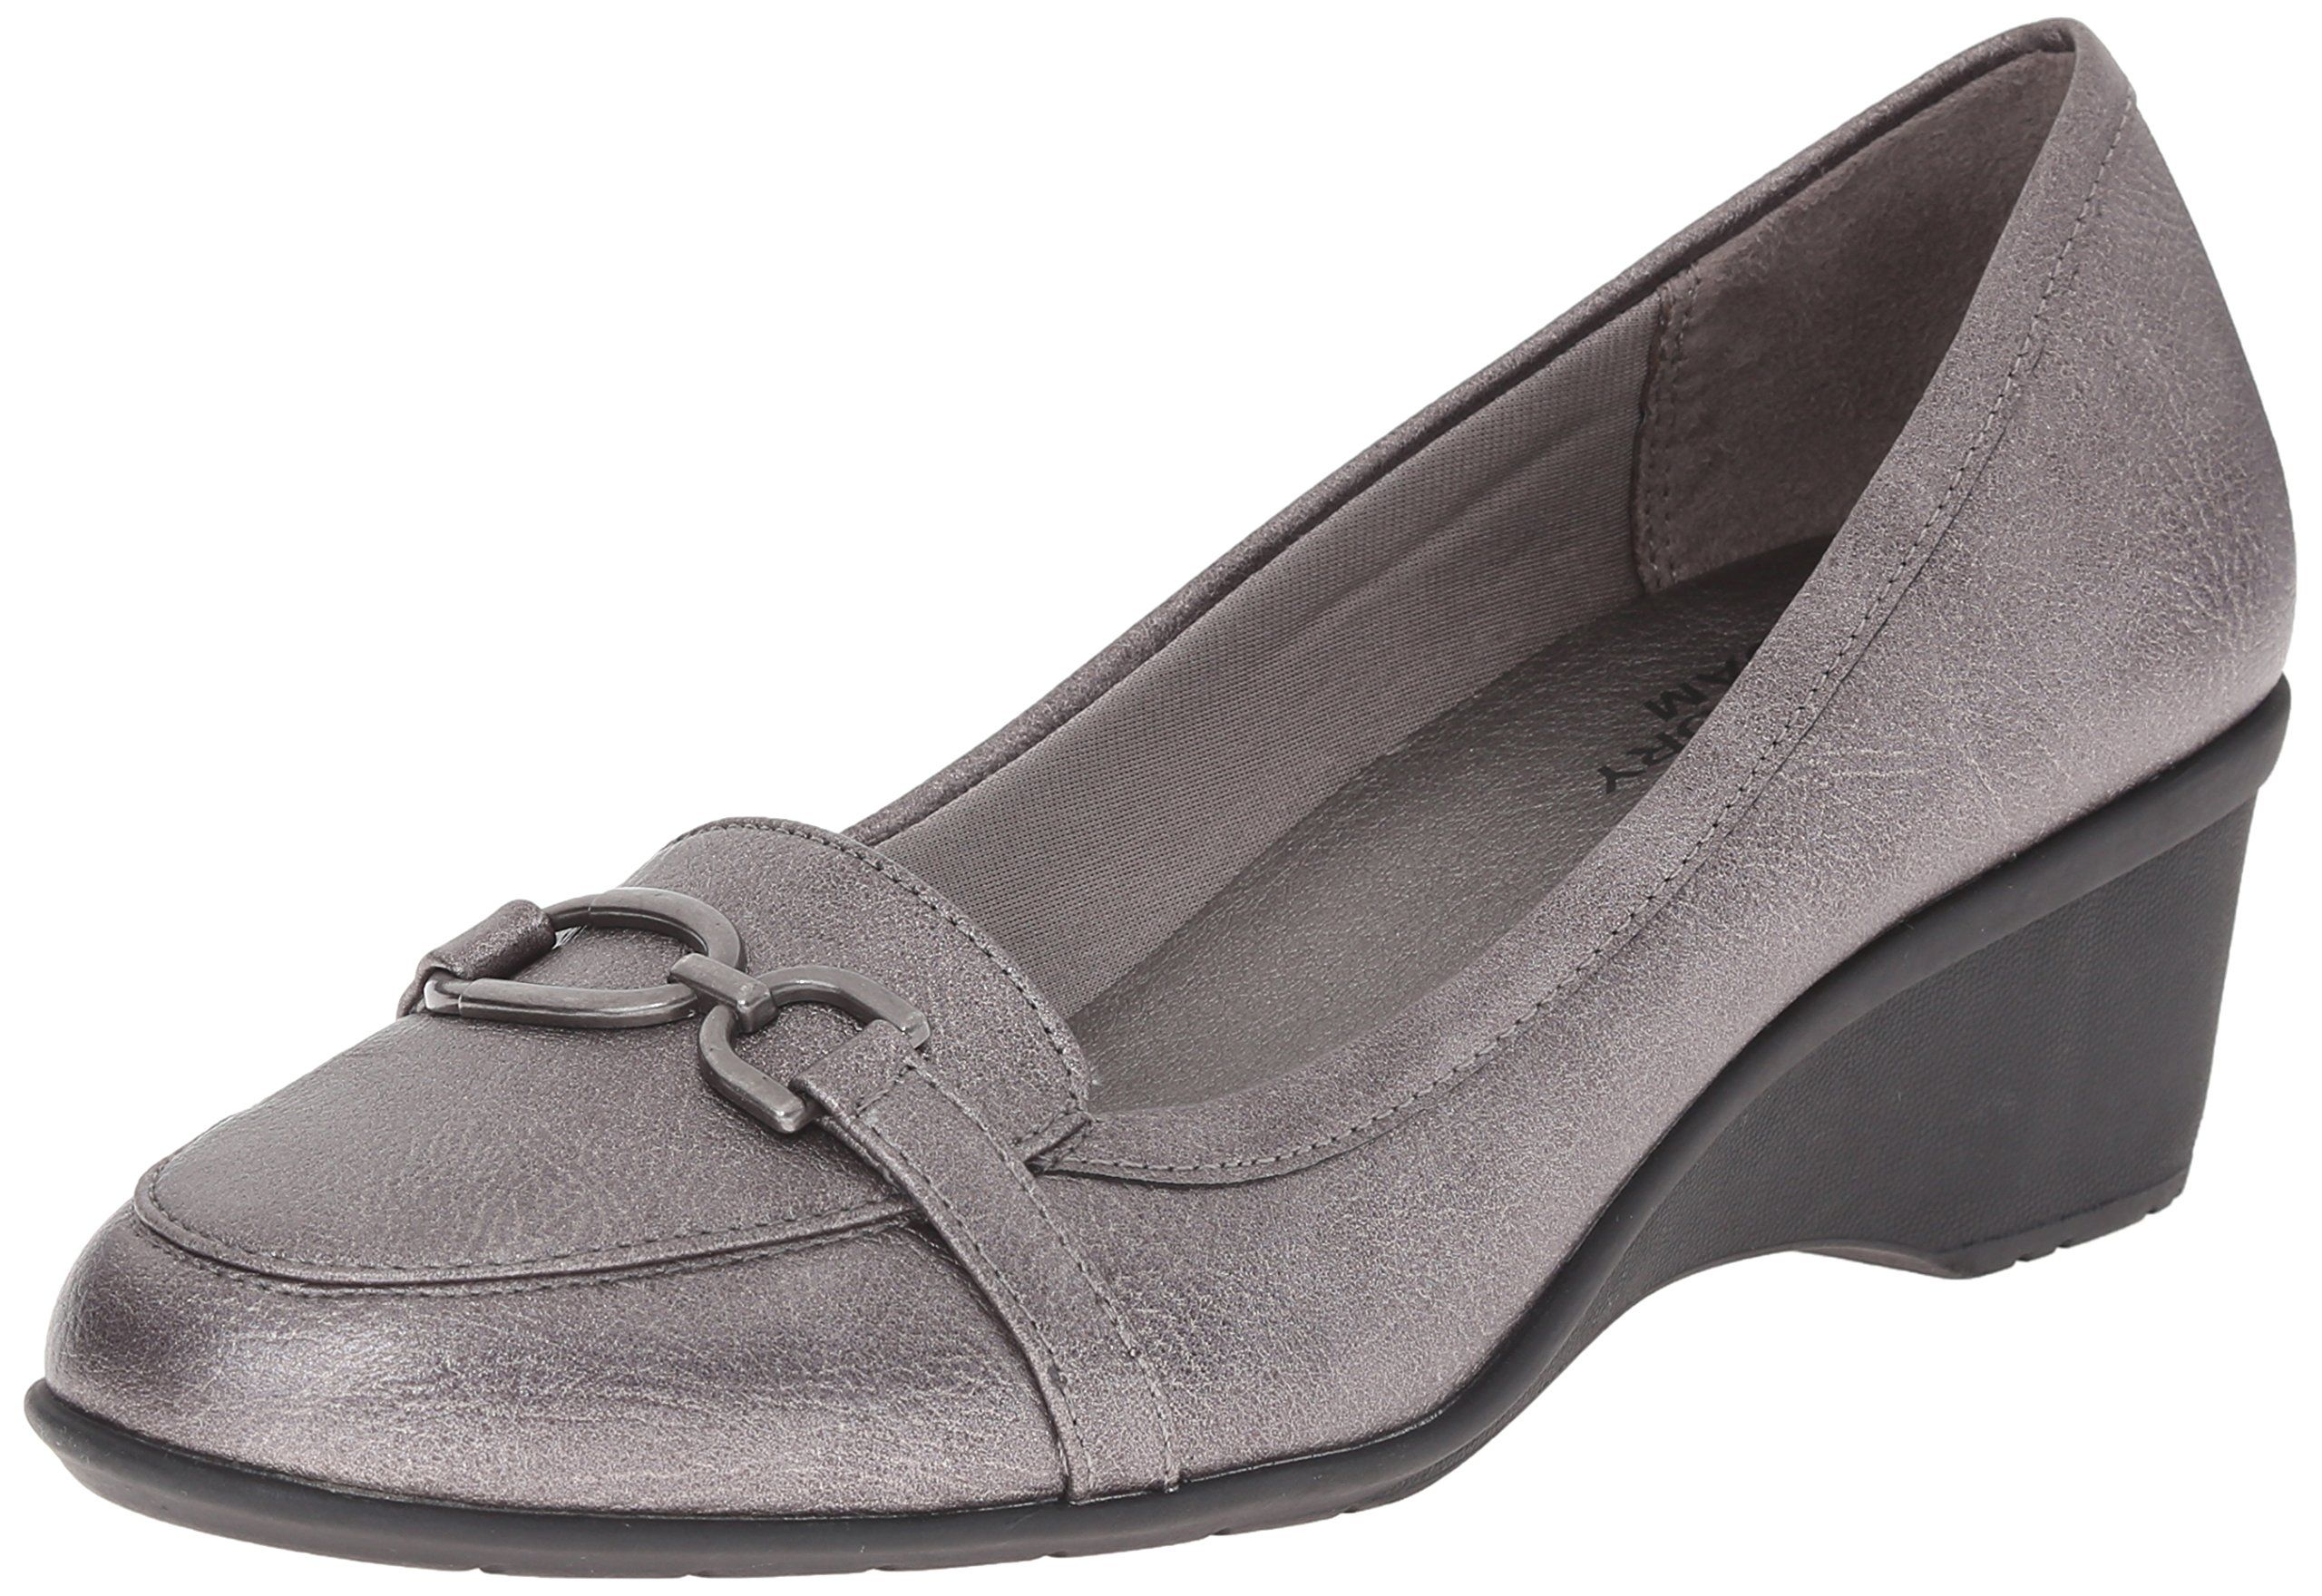 LifeStride Women's Keaton Wedge Loafer, Pewter, 10 W US. LifeStride  velocity with memory